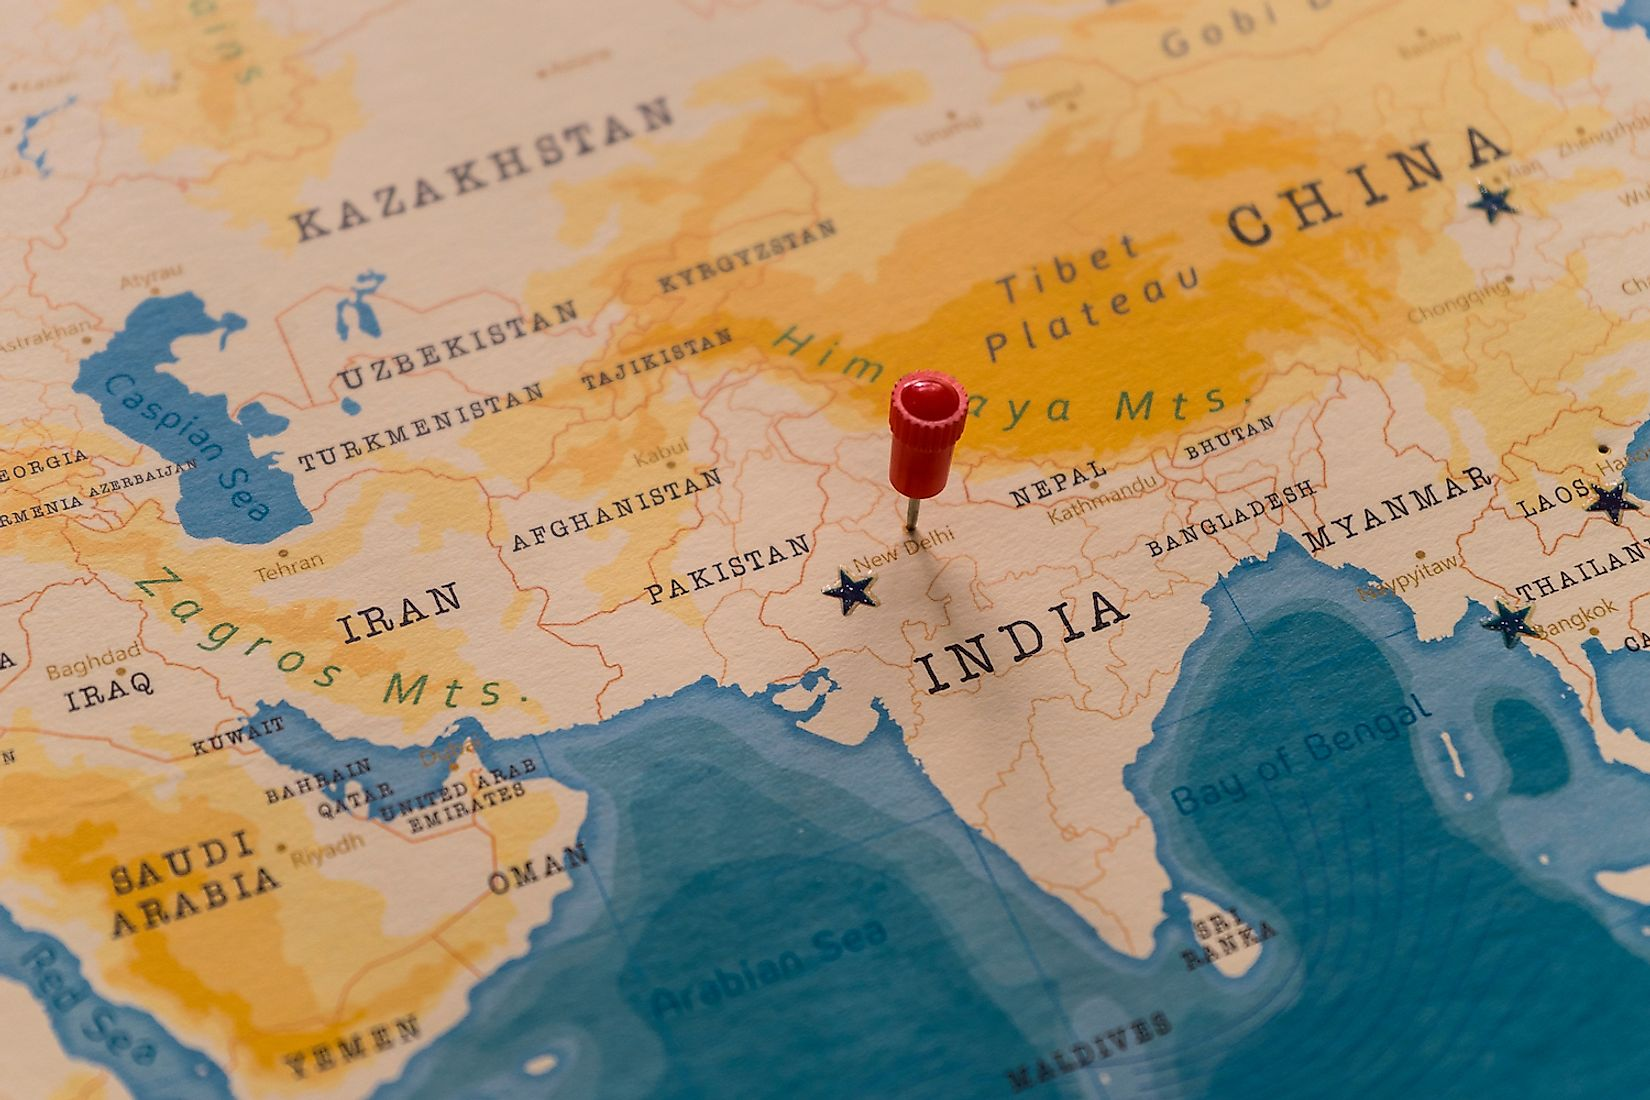 India is one of countries in South Asia. Image credit: Hyotographics/Shutterstock.com